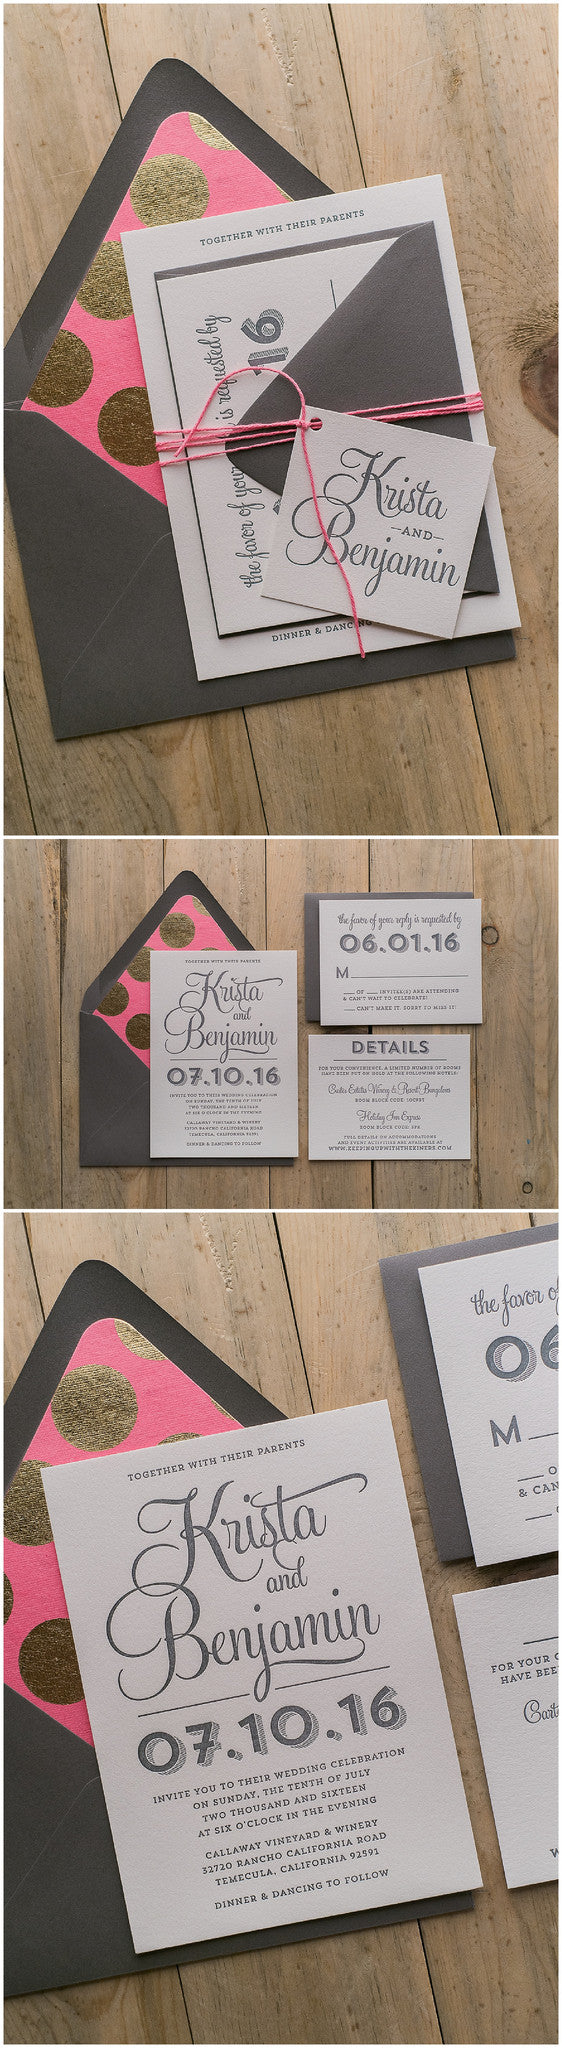 Polka Dot Wedding Invitations, Detailed Wedding Invitations, Letterpress Wedding Invitations, Hot Pink and Gold, Gold Polka Dots, Grey, Rustic Styling, Wedding Invitations, Brooke Suite, Just Invite Me